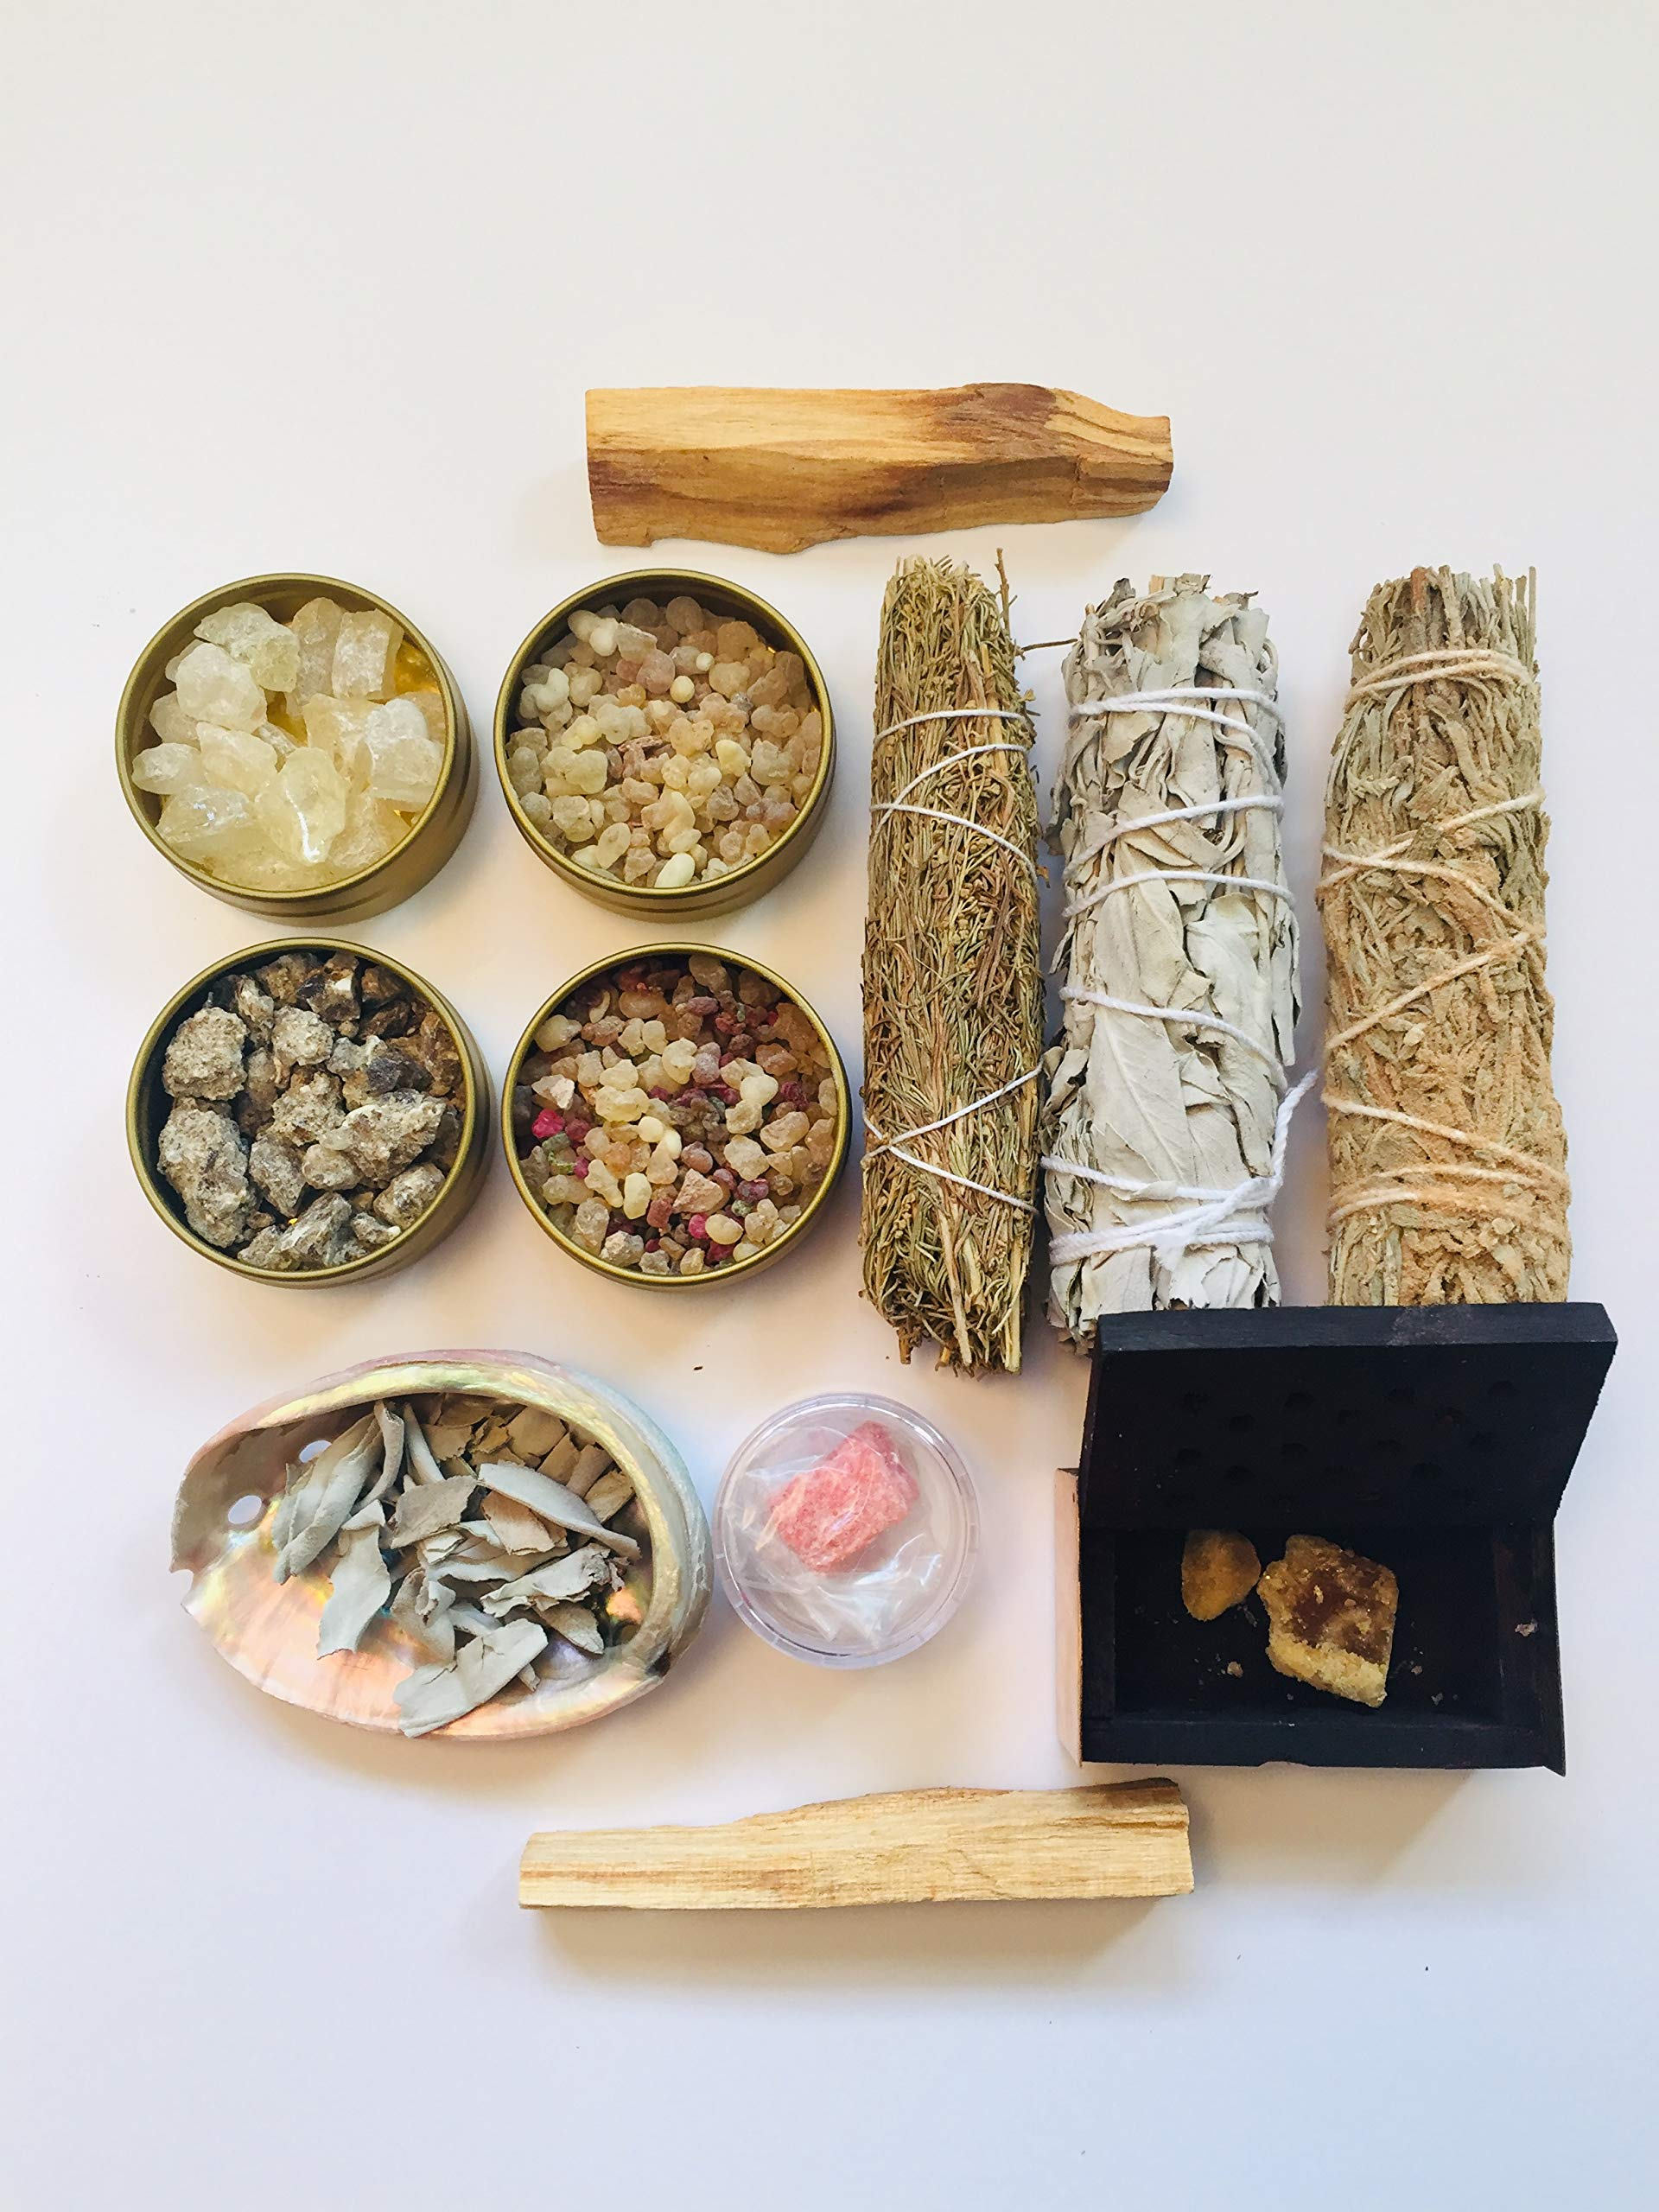 Resin Incense and Sage Smudges Variety Gift Kit includes, Amber Resin, Rose Resin, White Copal, Mystical Benzoin, Frankincense, White Sage Smudge, Desert Sage, Palo Santo Sticks and Abalone Shell by Sacred Scents For You (Image #2)